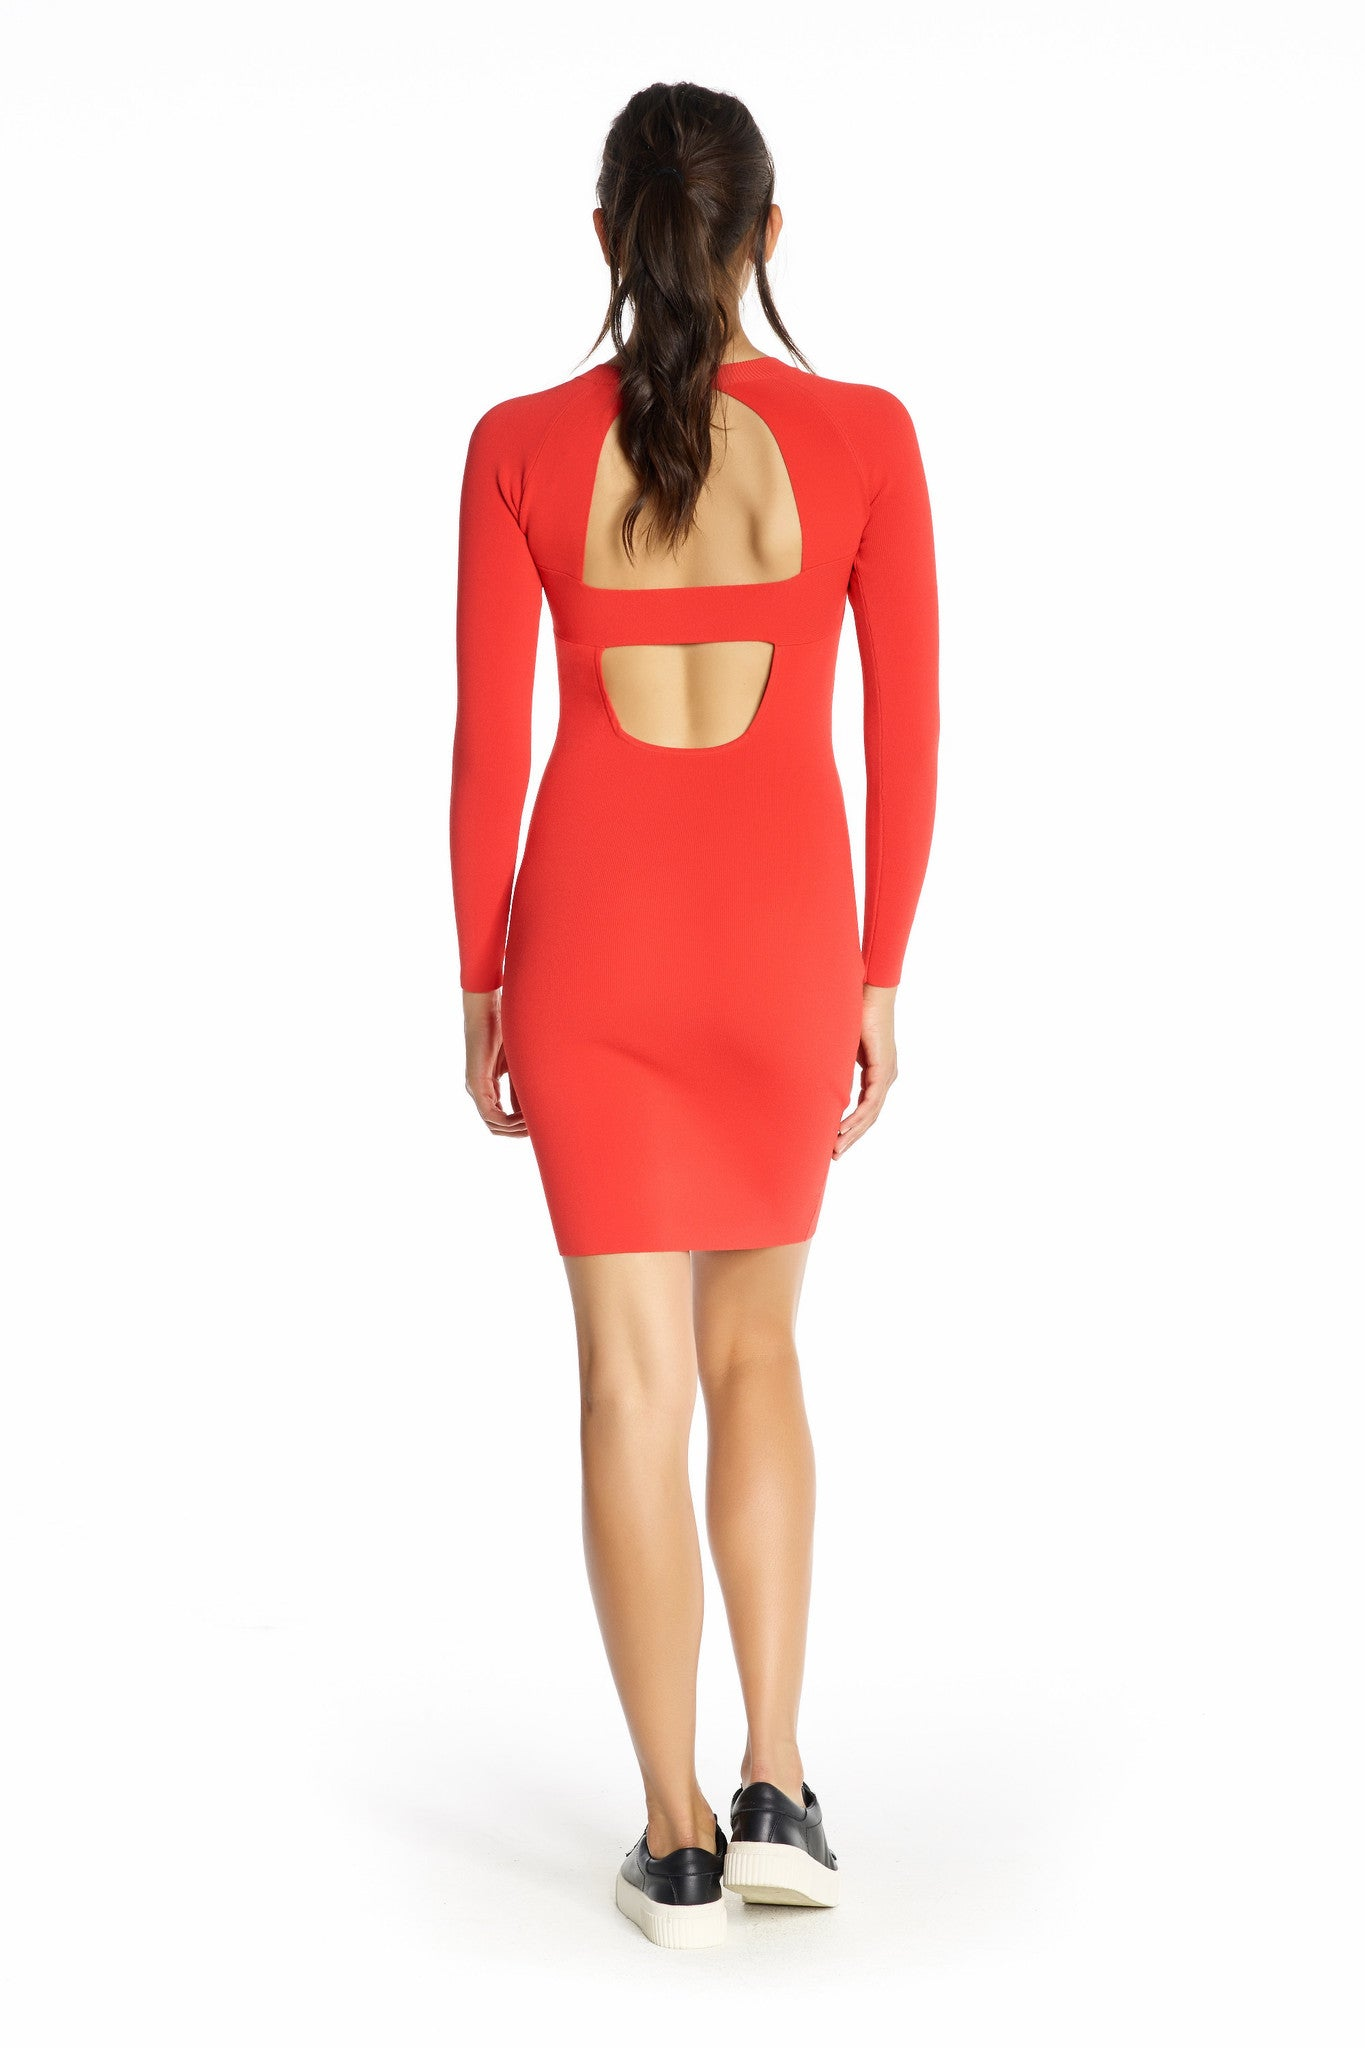 BANDED BACK LONG SLEEVE DRESS DRESSES by KENDALL + KYLIE